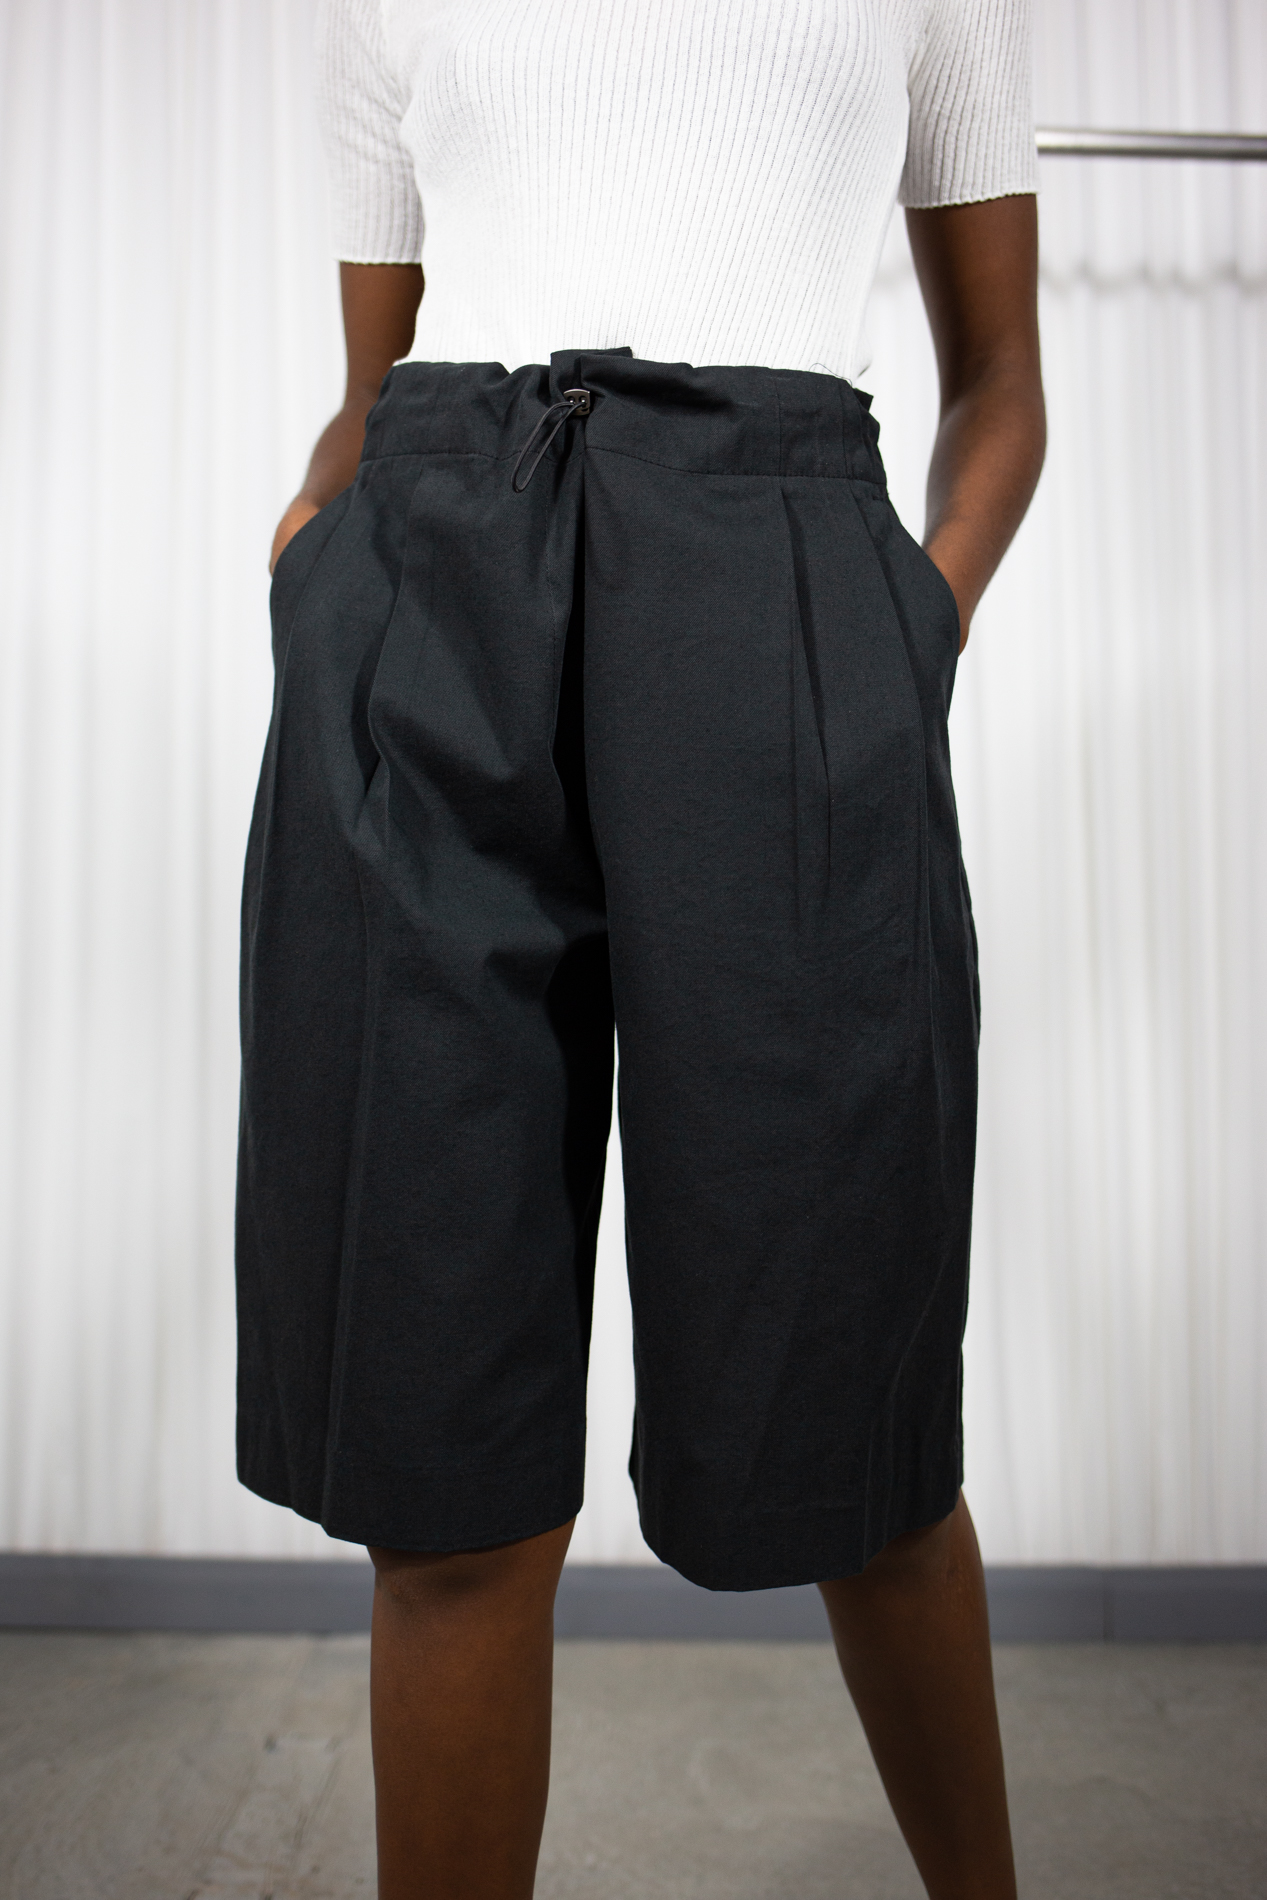 Table Free Short Pants Black